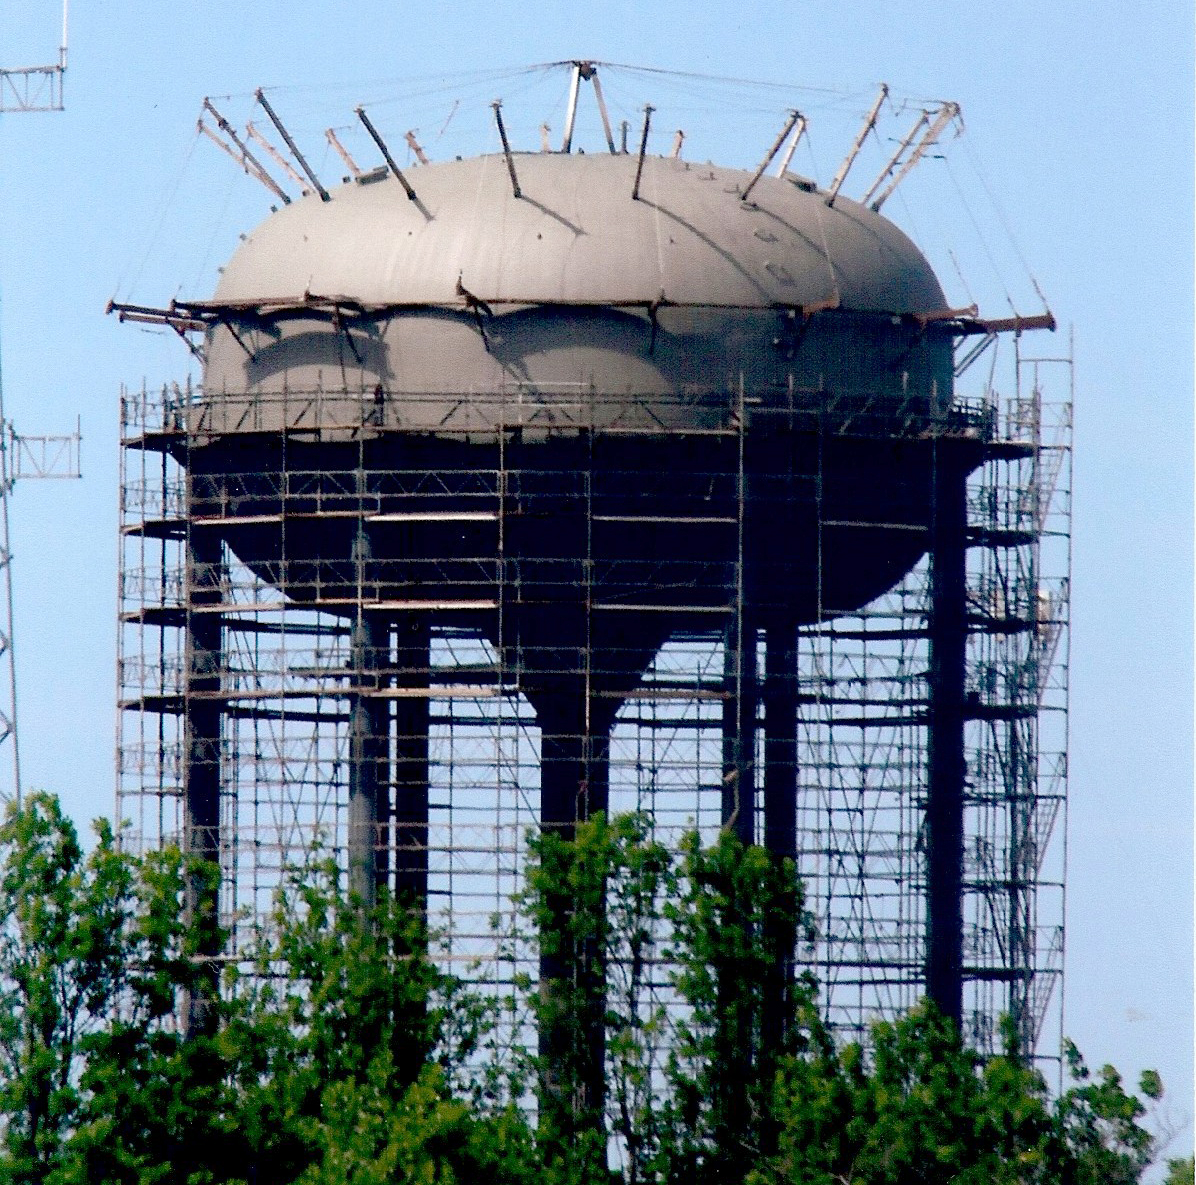 New york monroe county hilton - June 16 2016 The Shroud Is Off Revealing The Scaffolding That Held It